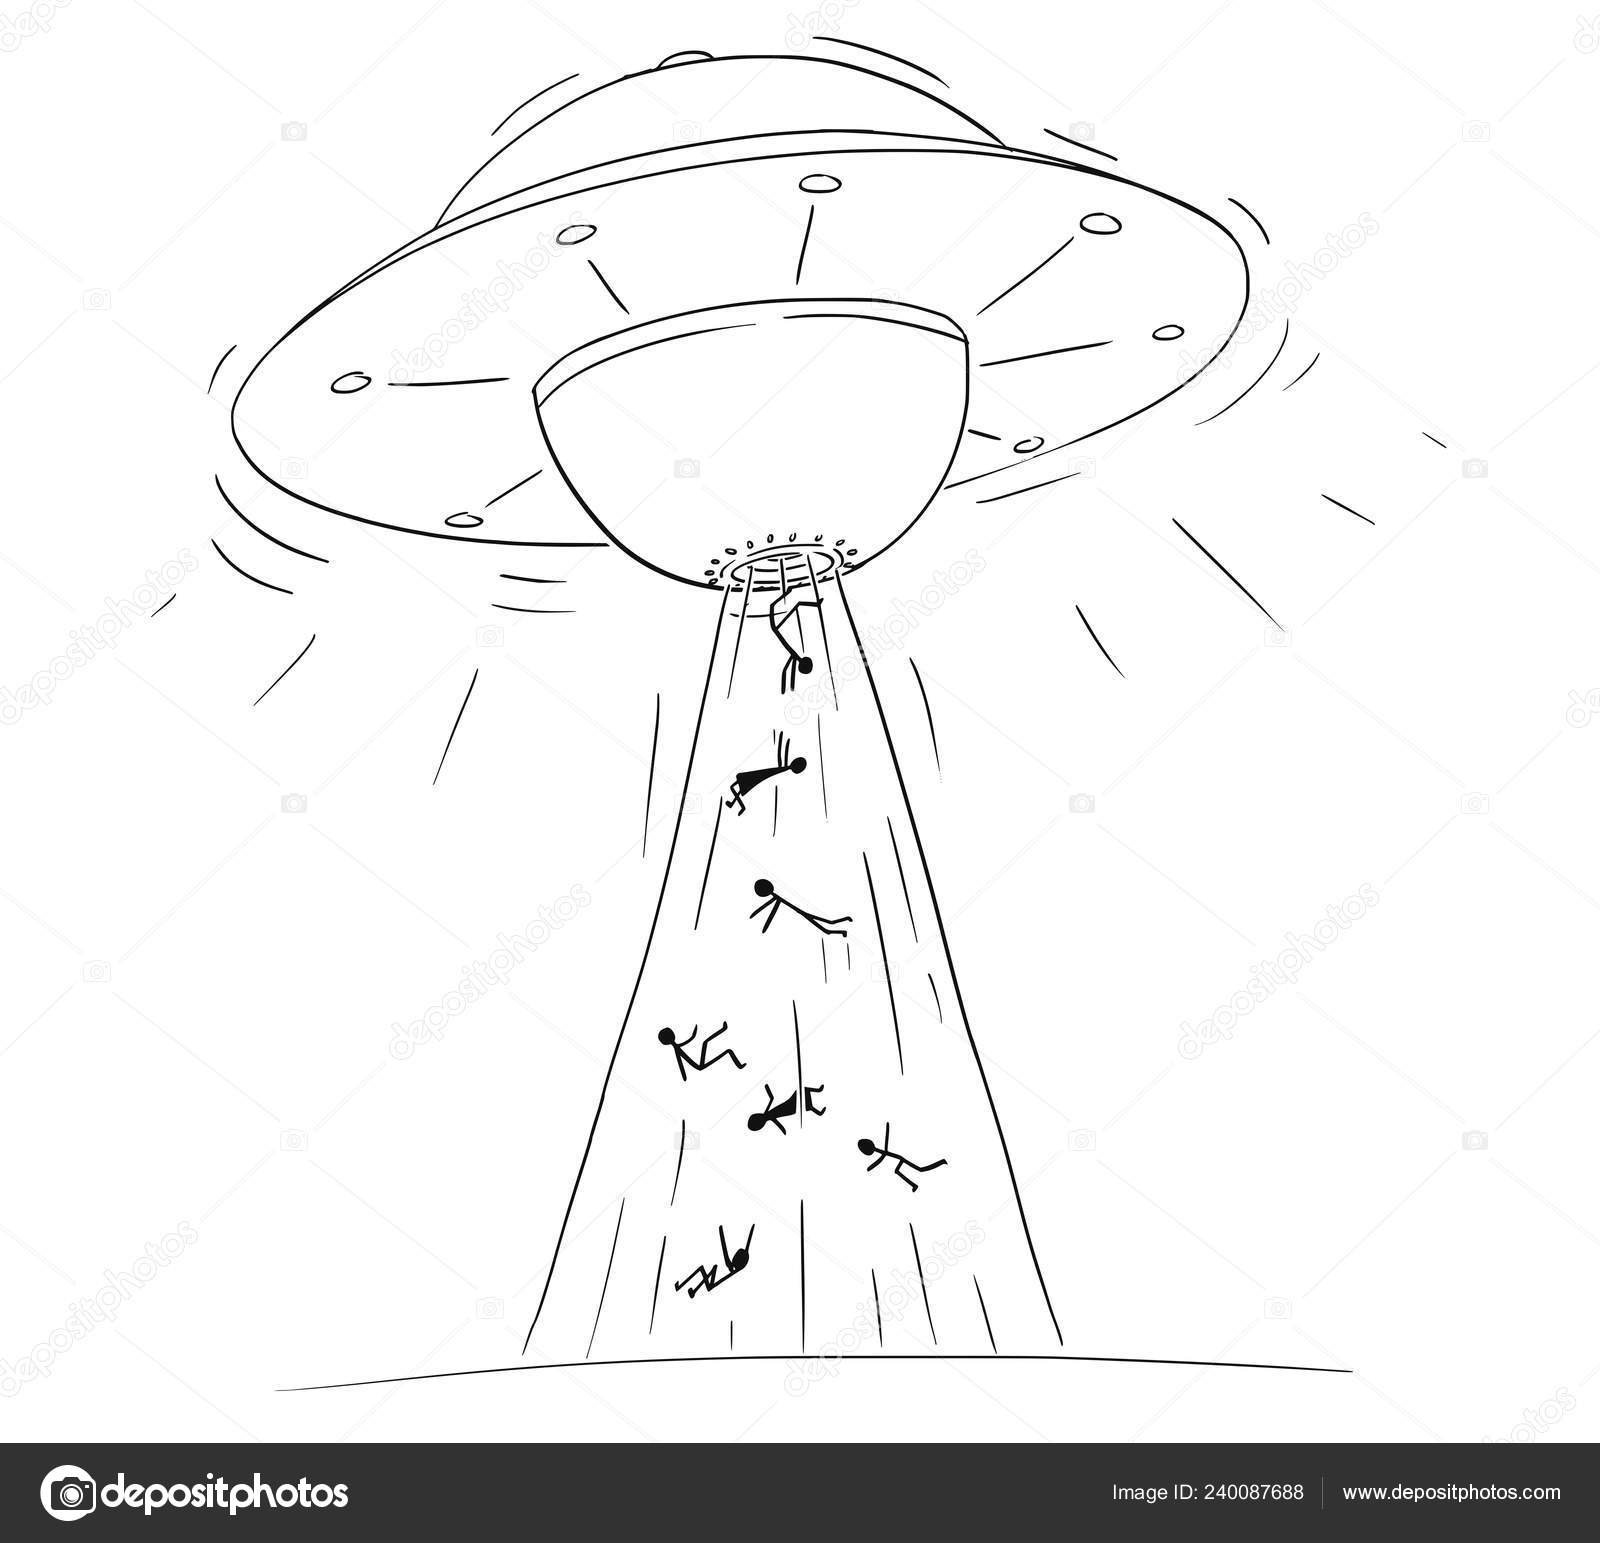 Cartoon drawing illustration of alien space ship or ufo abducting or kidnapping people in ray of light